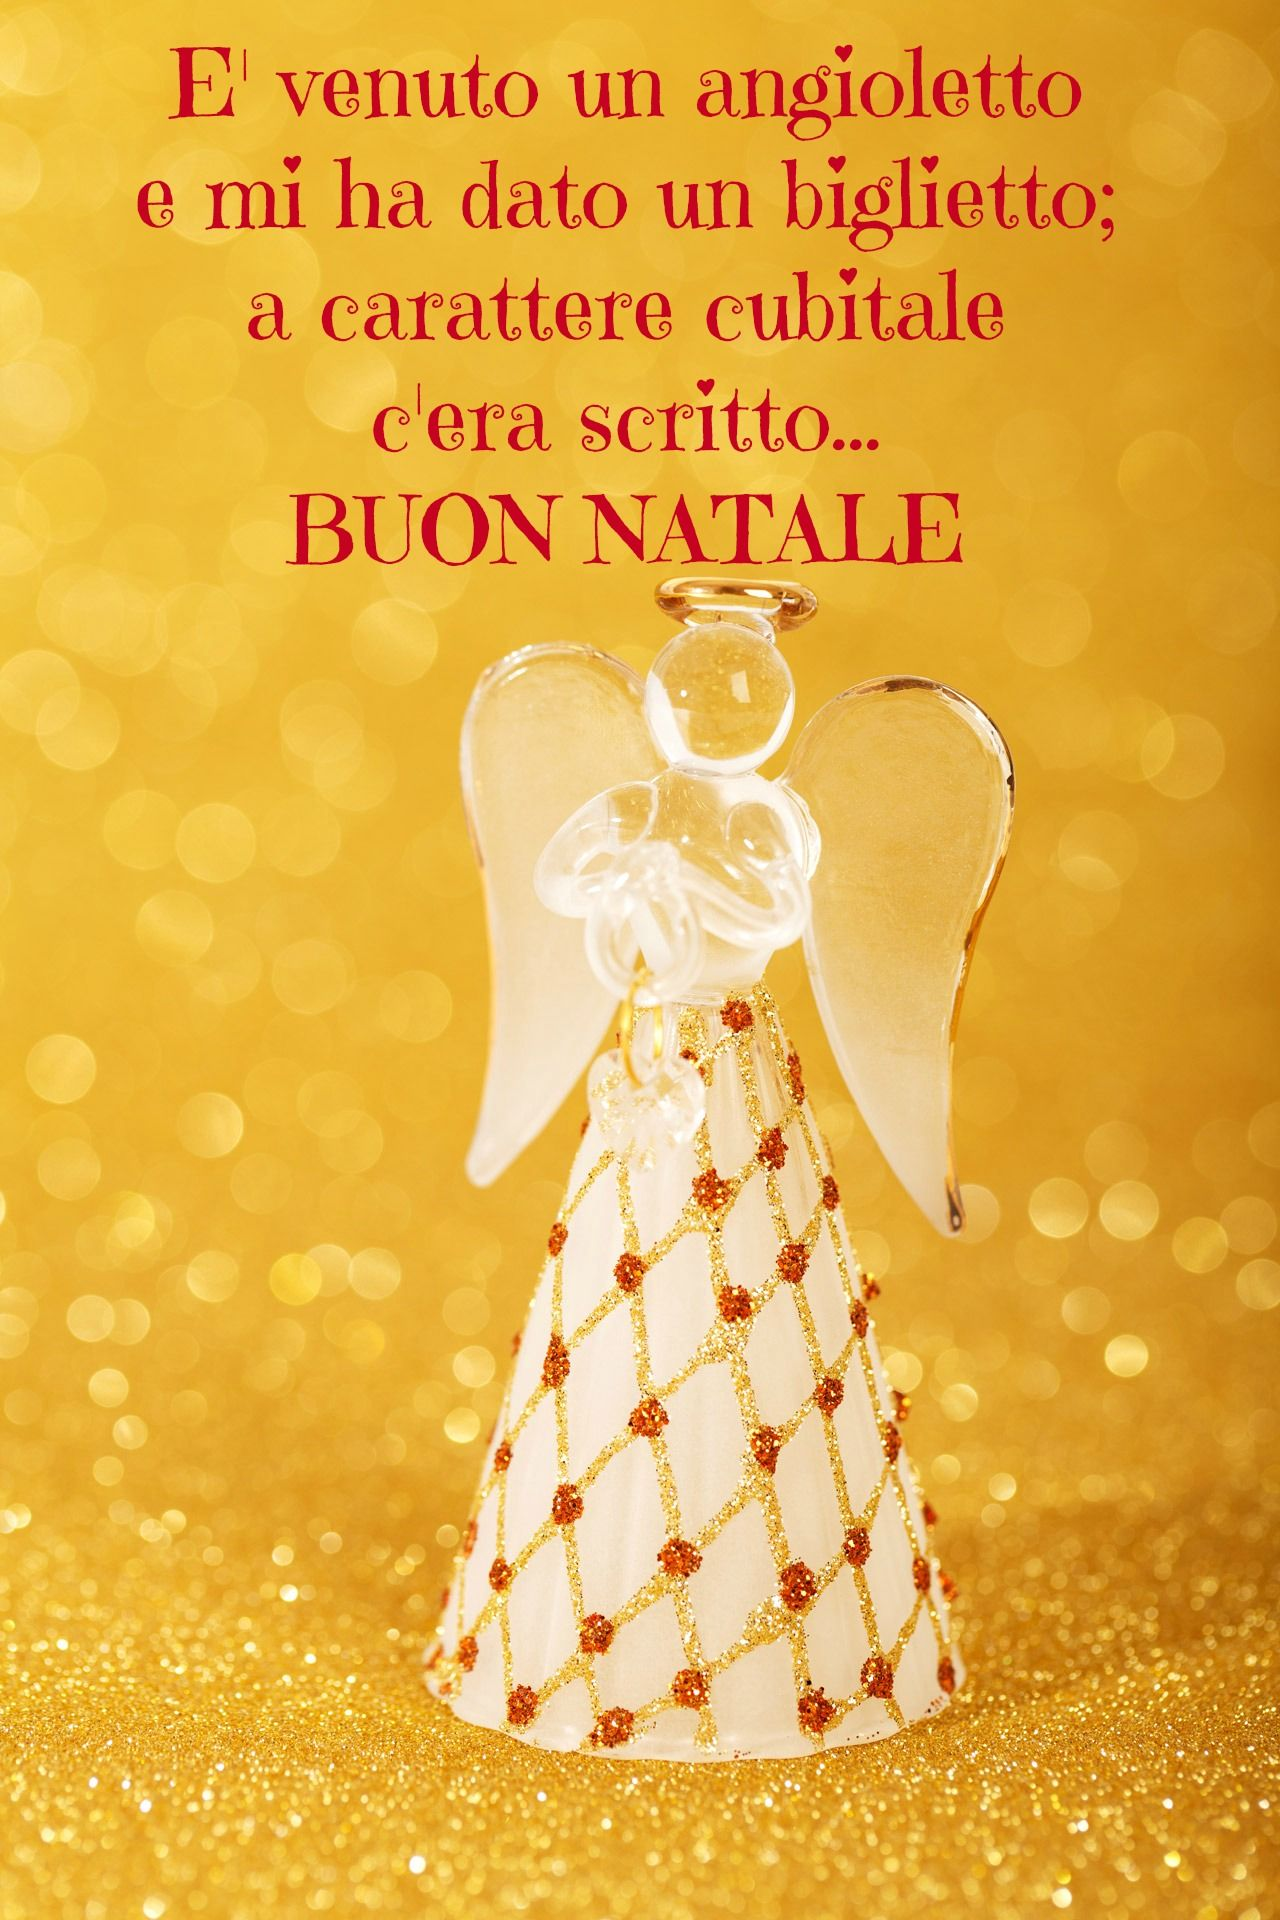 Pin By Giovanna Patella On Natale In Italia Pinterest Christmas